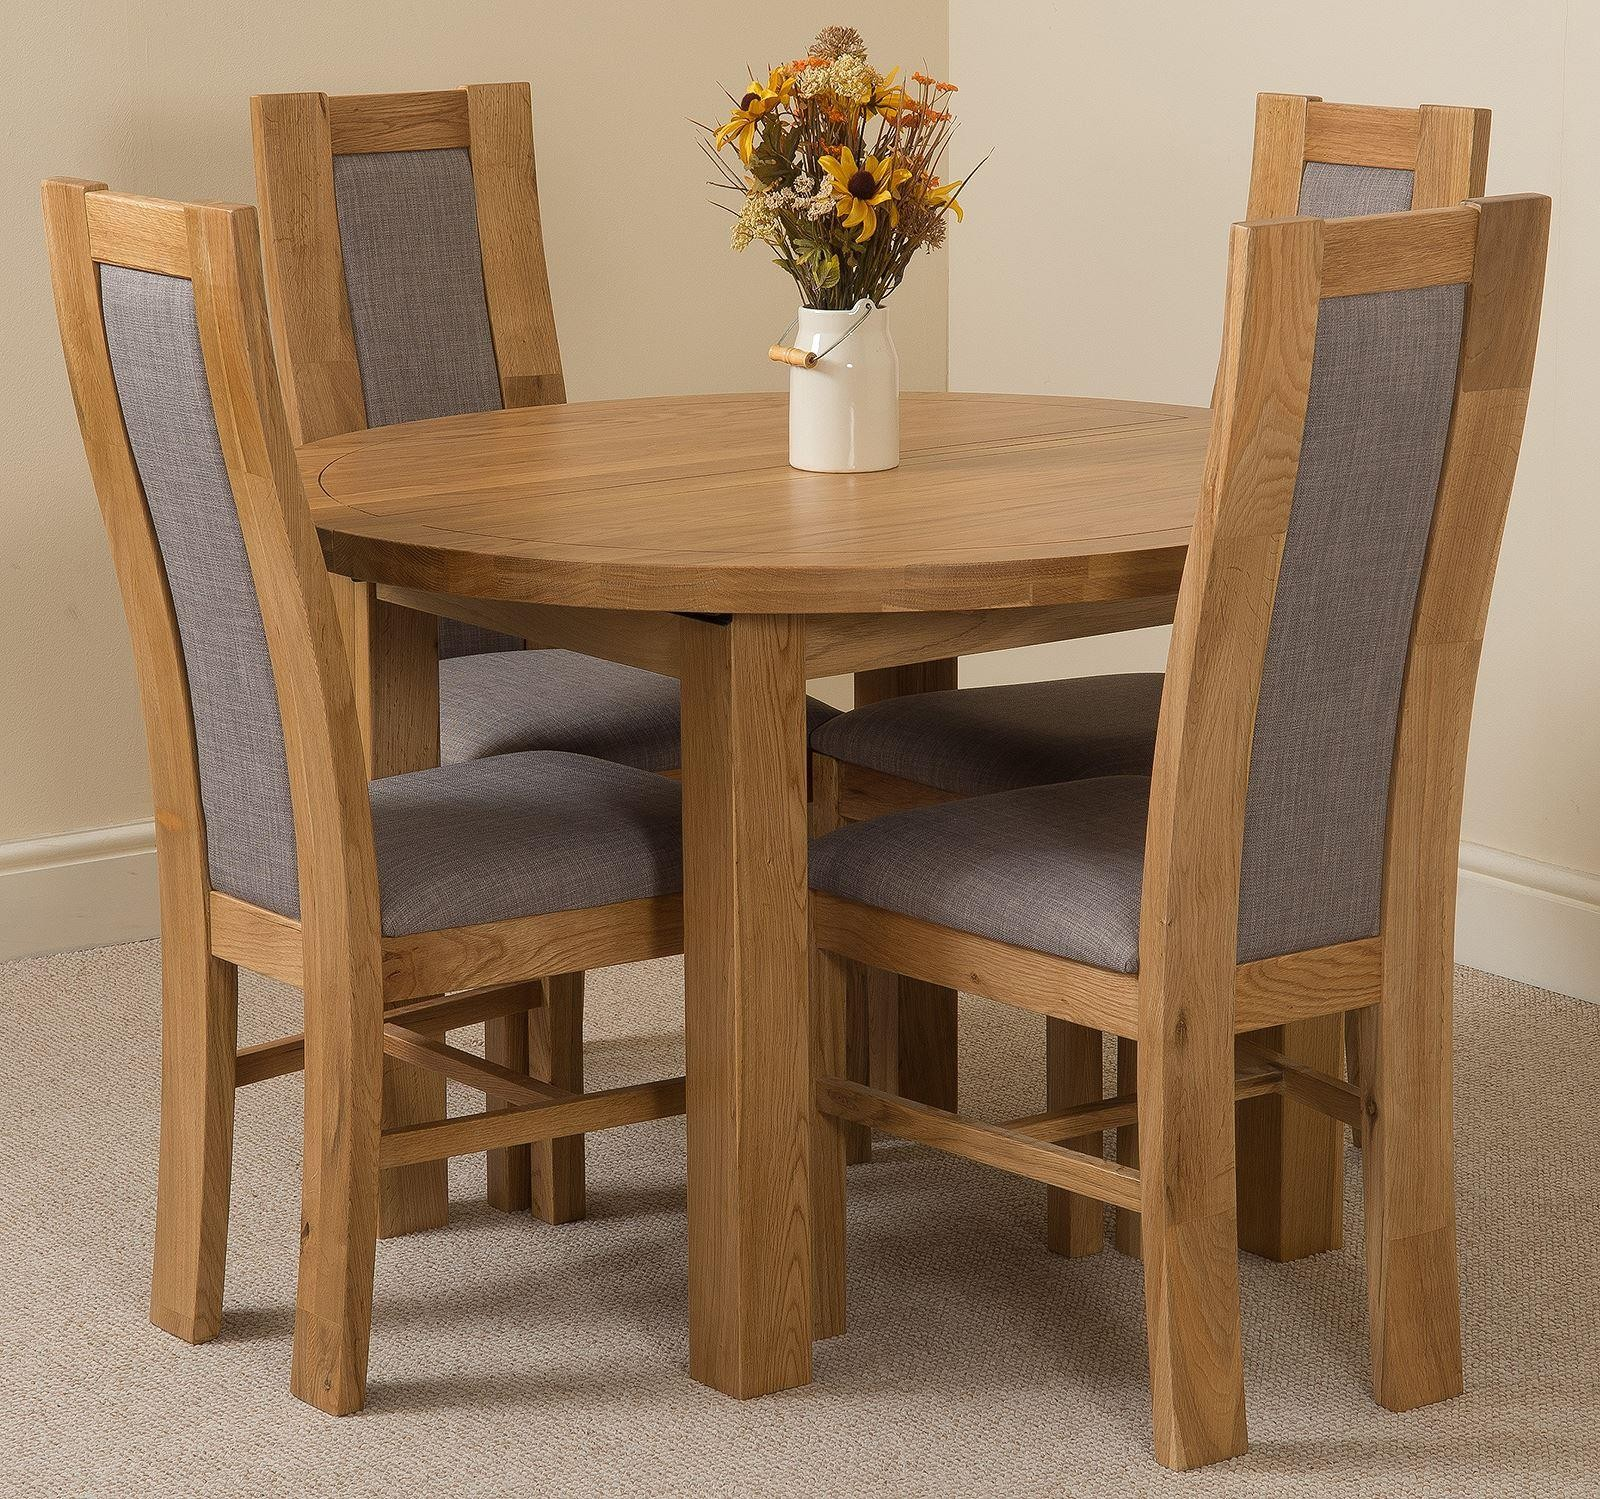 Edmonton Solid Oak Extending Oval Dining Table With 4 Stanford Chairs Light And Grey Fabric